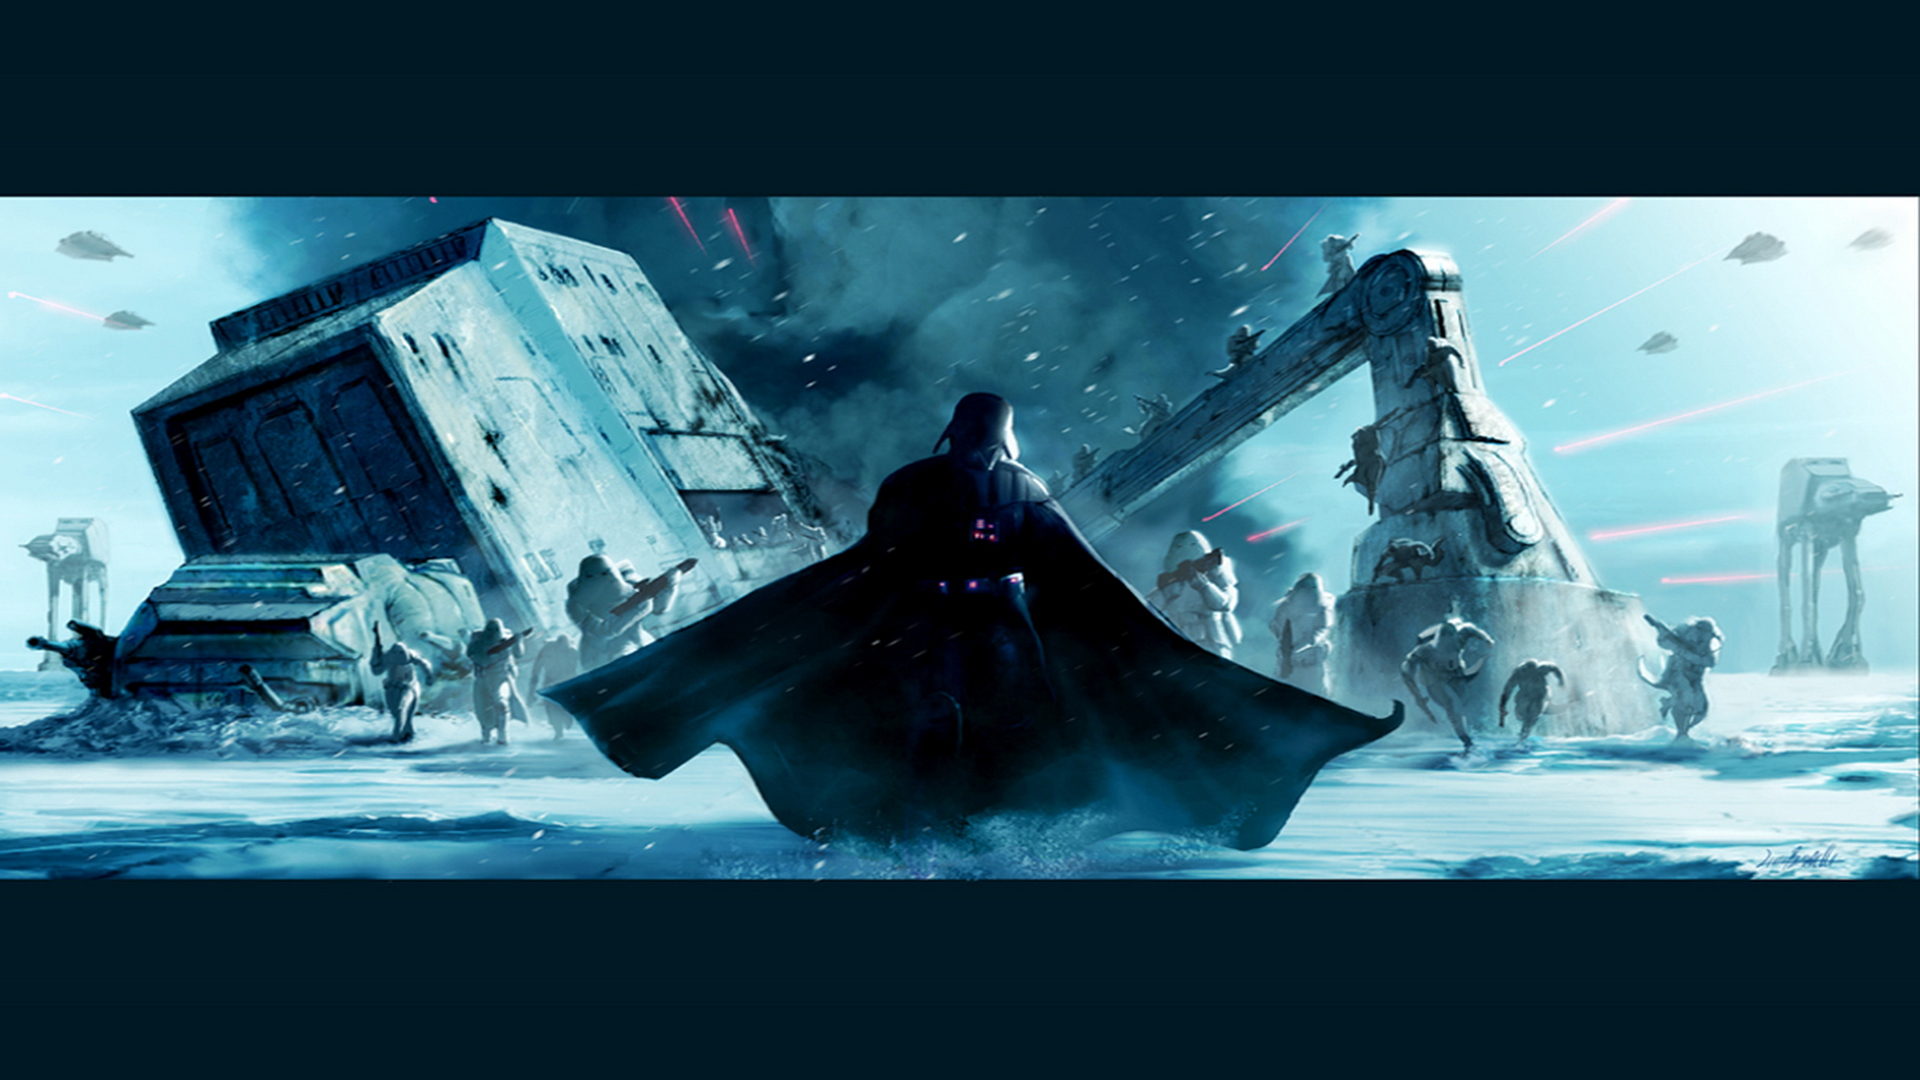 Star Wars Wallpapers Darth Vader Hoth star wars 25114659 1024 768 1920x1080